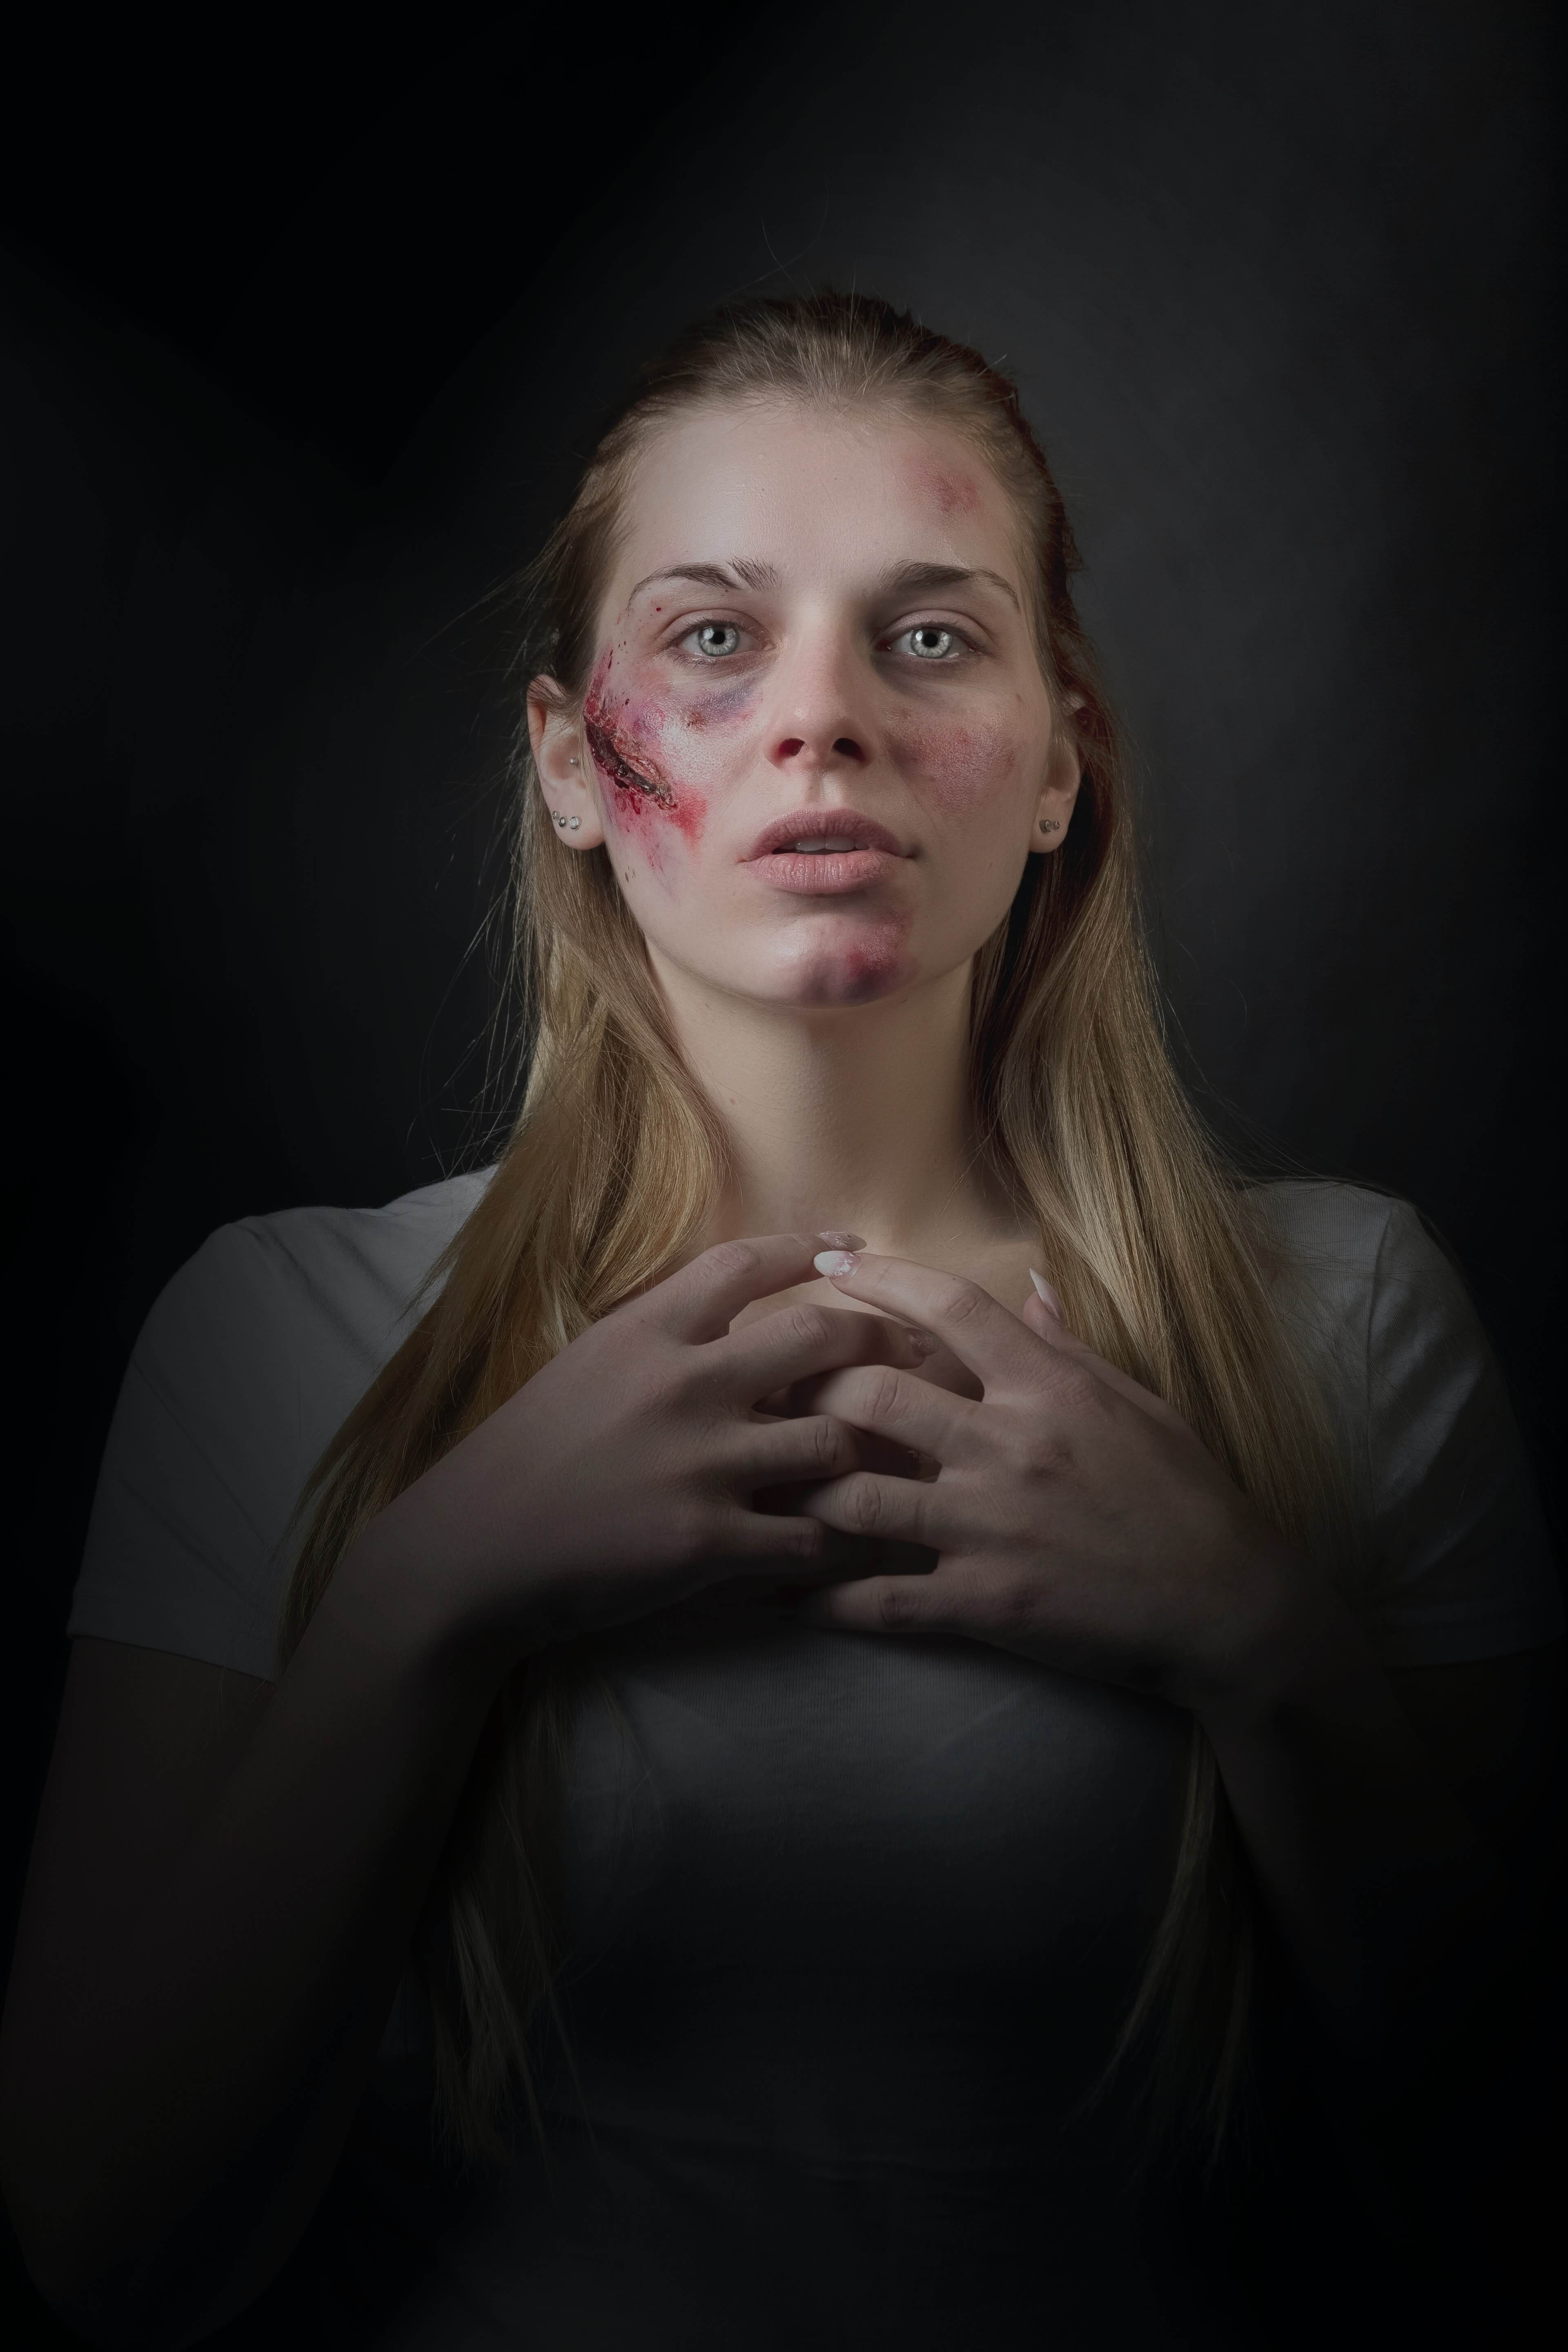 victim of domestic violence in india